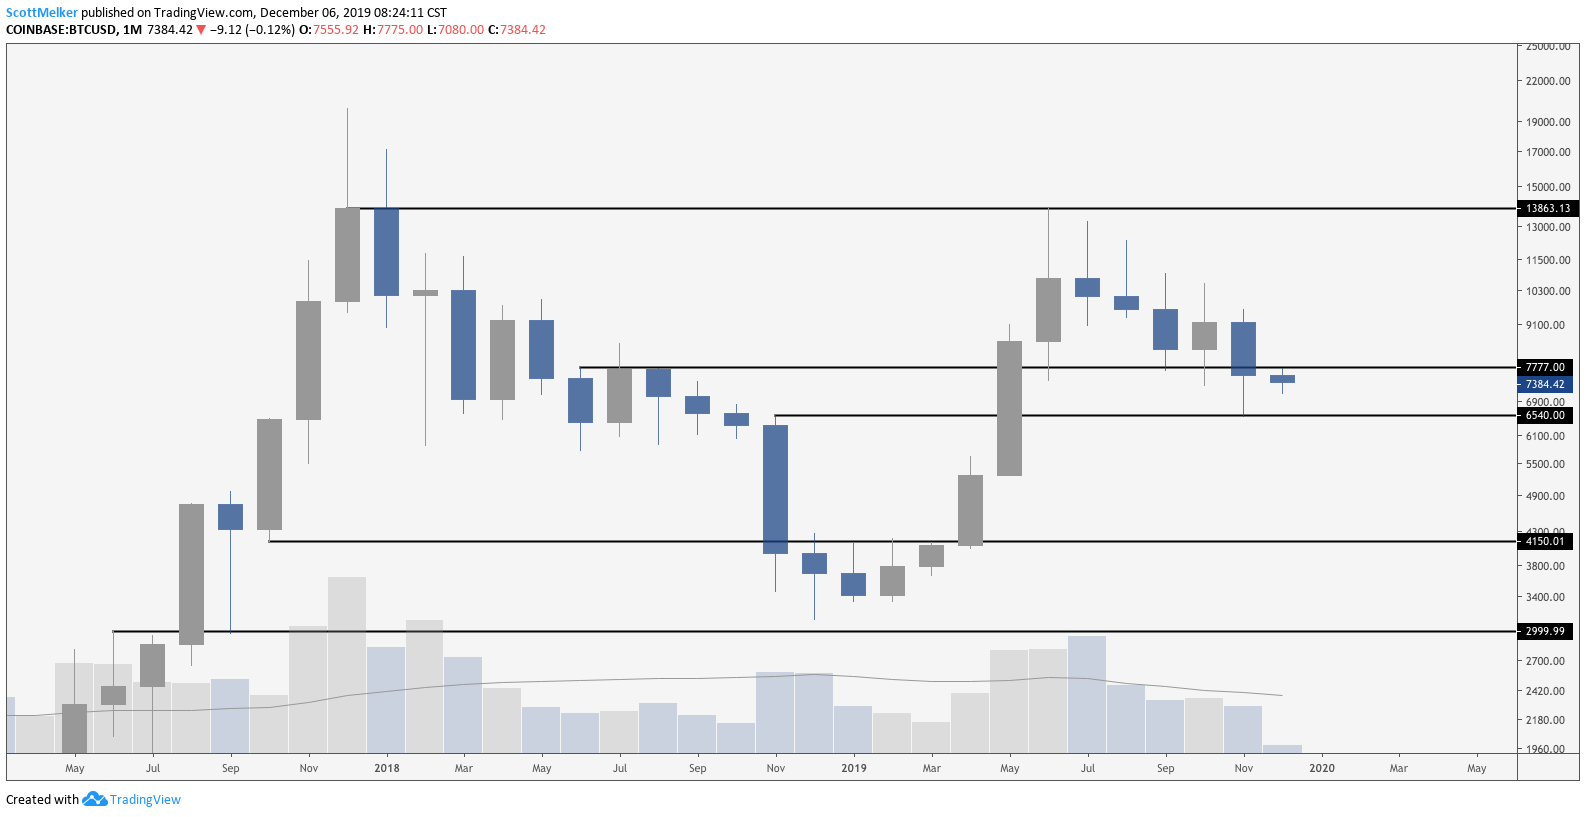 BTC/USD monthly chart. Source: TradingView